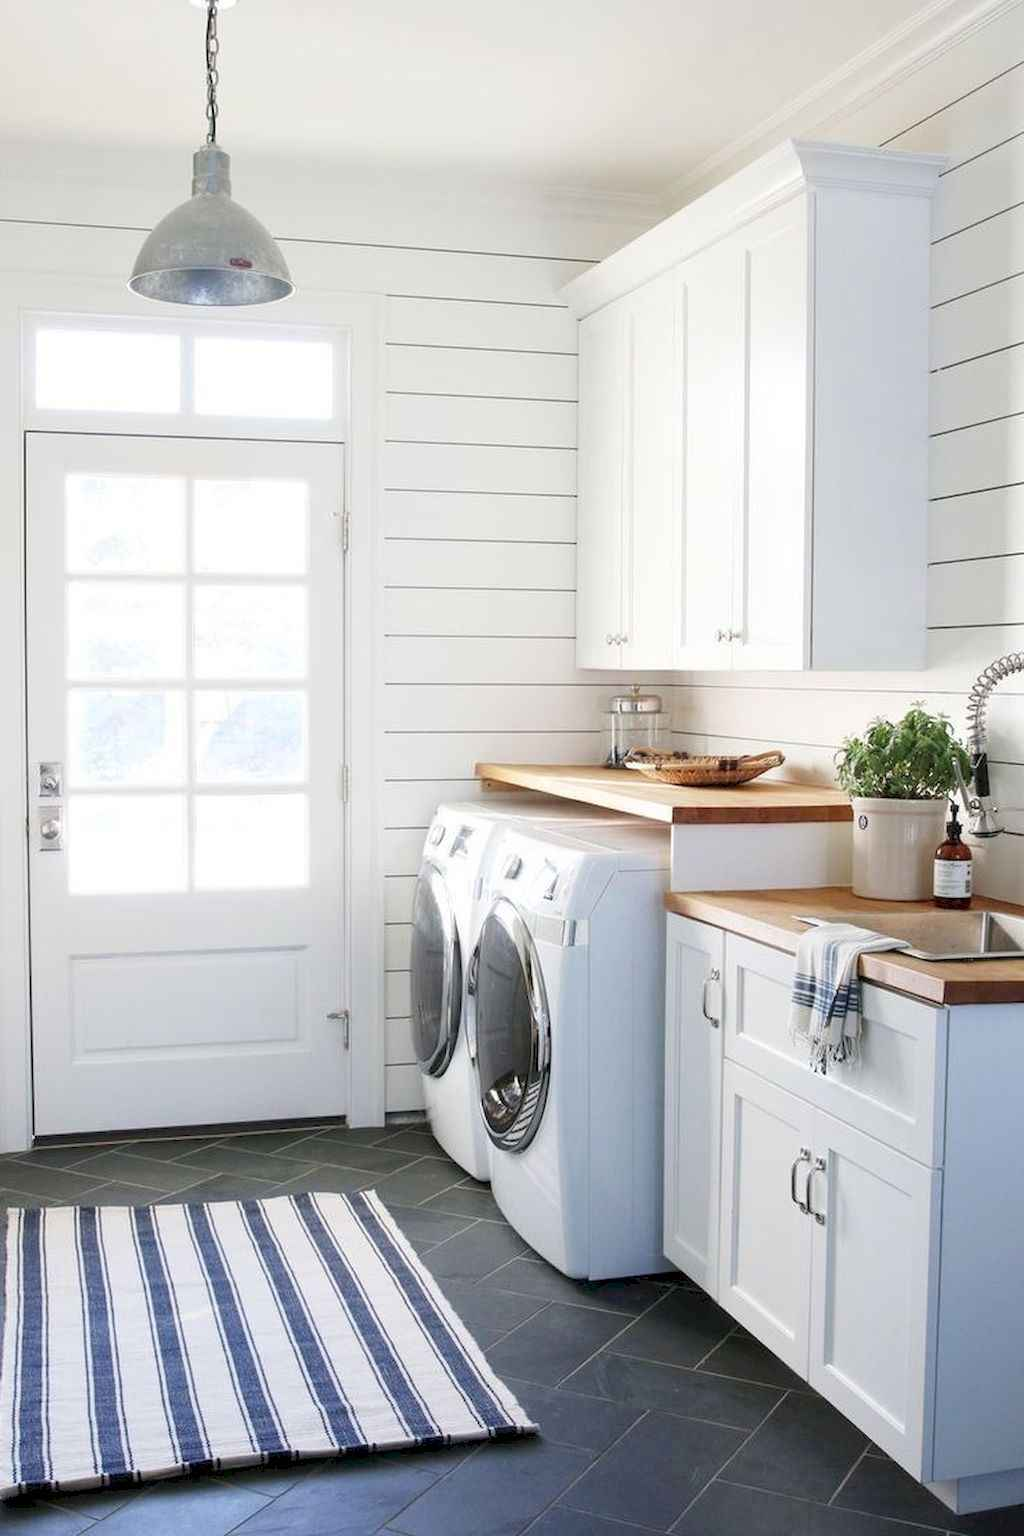 45 Rustic Farmhouse Laundry Room Design Ideas and Makeover (13)